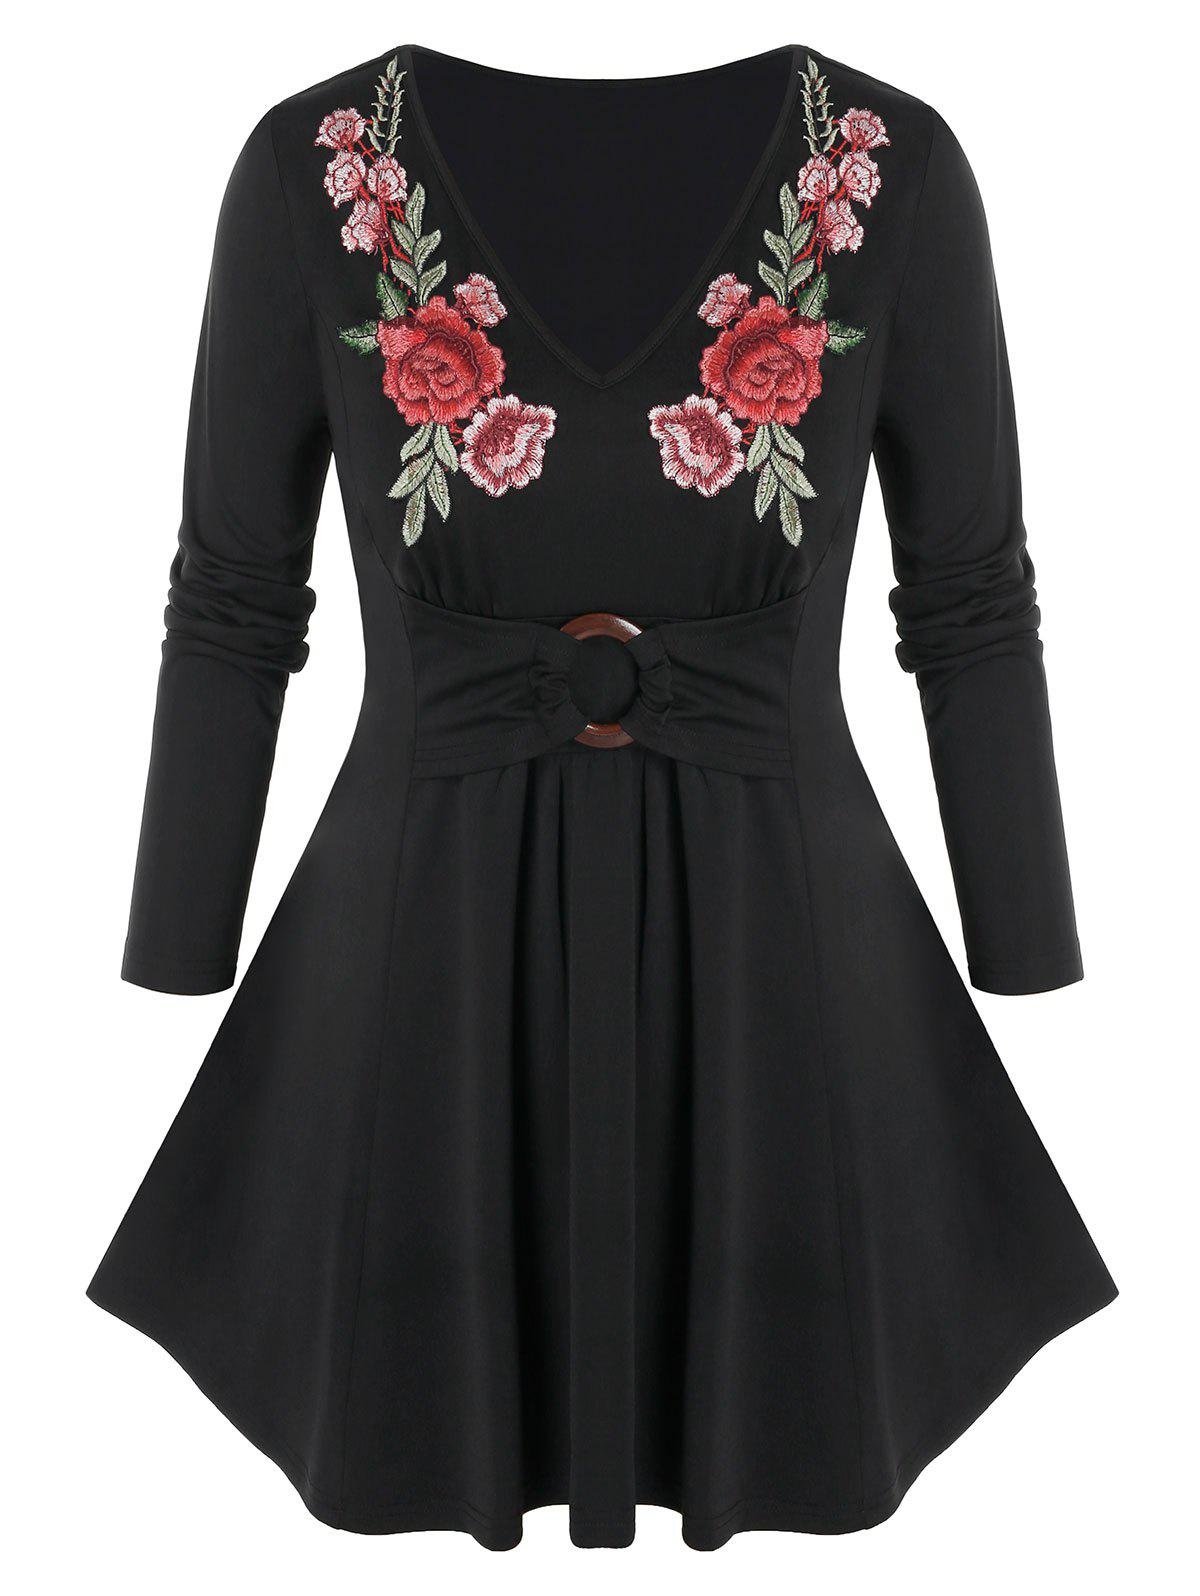 Plus Size Flower Embroidered Long Sleeve Tunic Tee - BLACK 5X